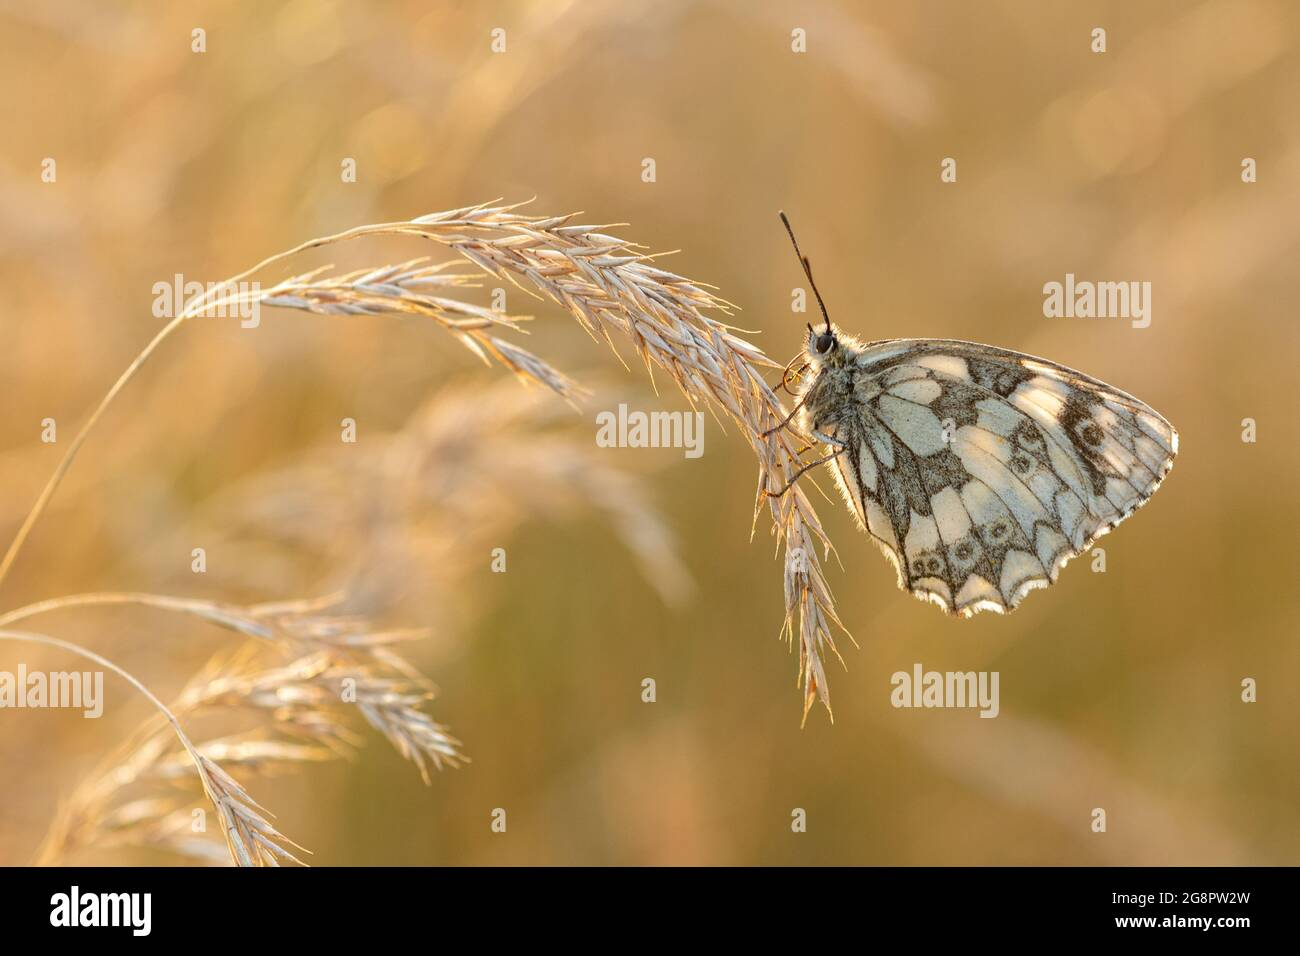 marbled-white-butterfly-melanargia-galathea-roosting-among-grasses-in-warm-evening-light-during-july-or-summer-hampshire-uk-2G8PW2W.jpg